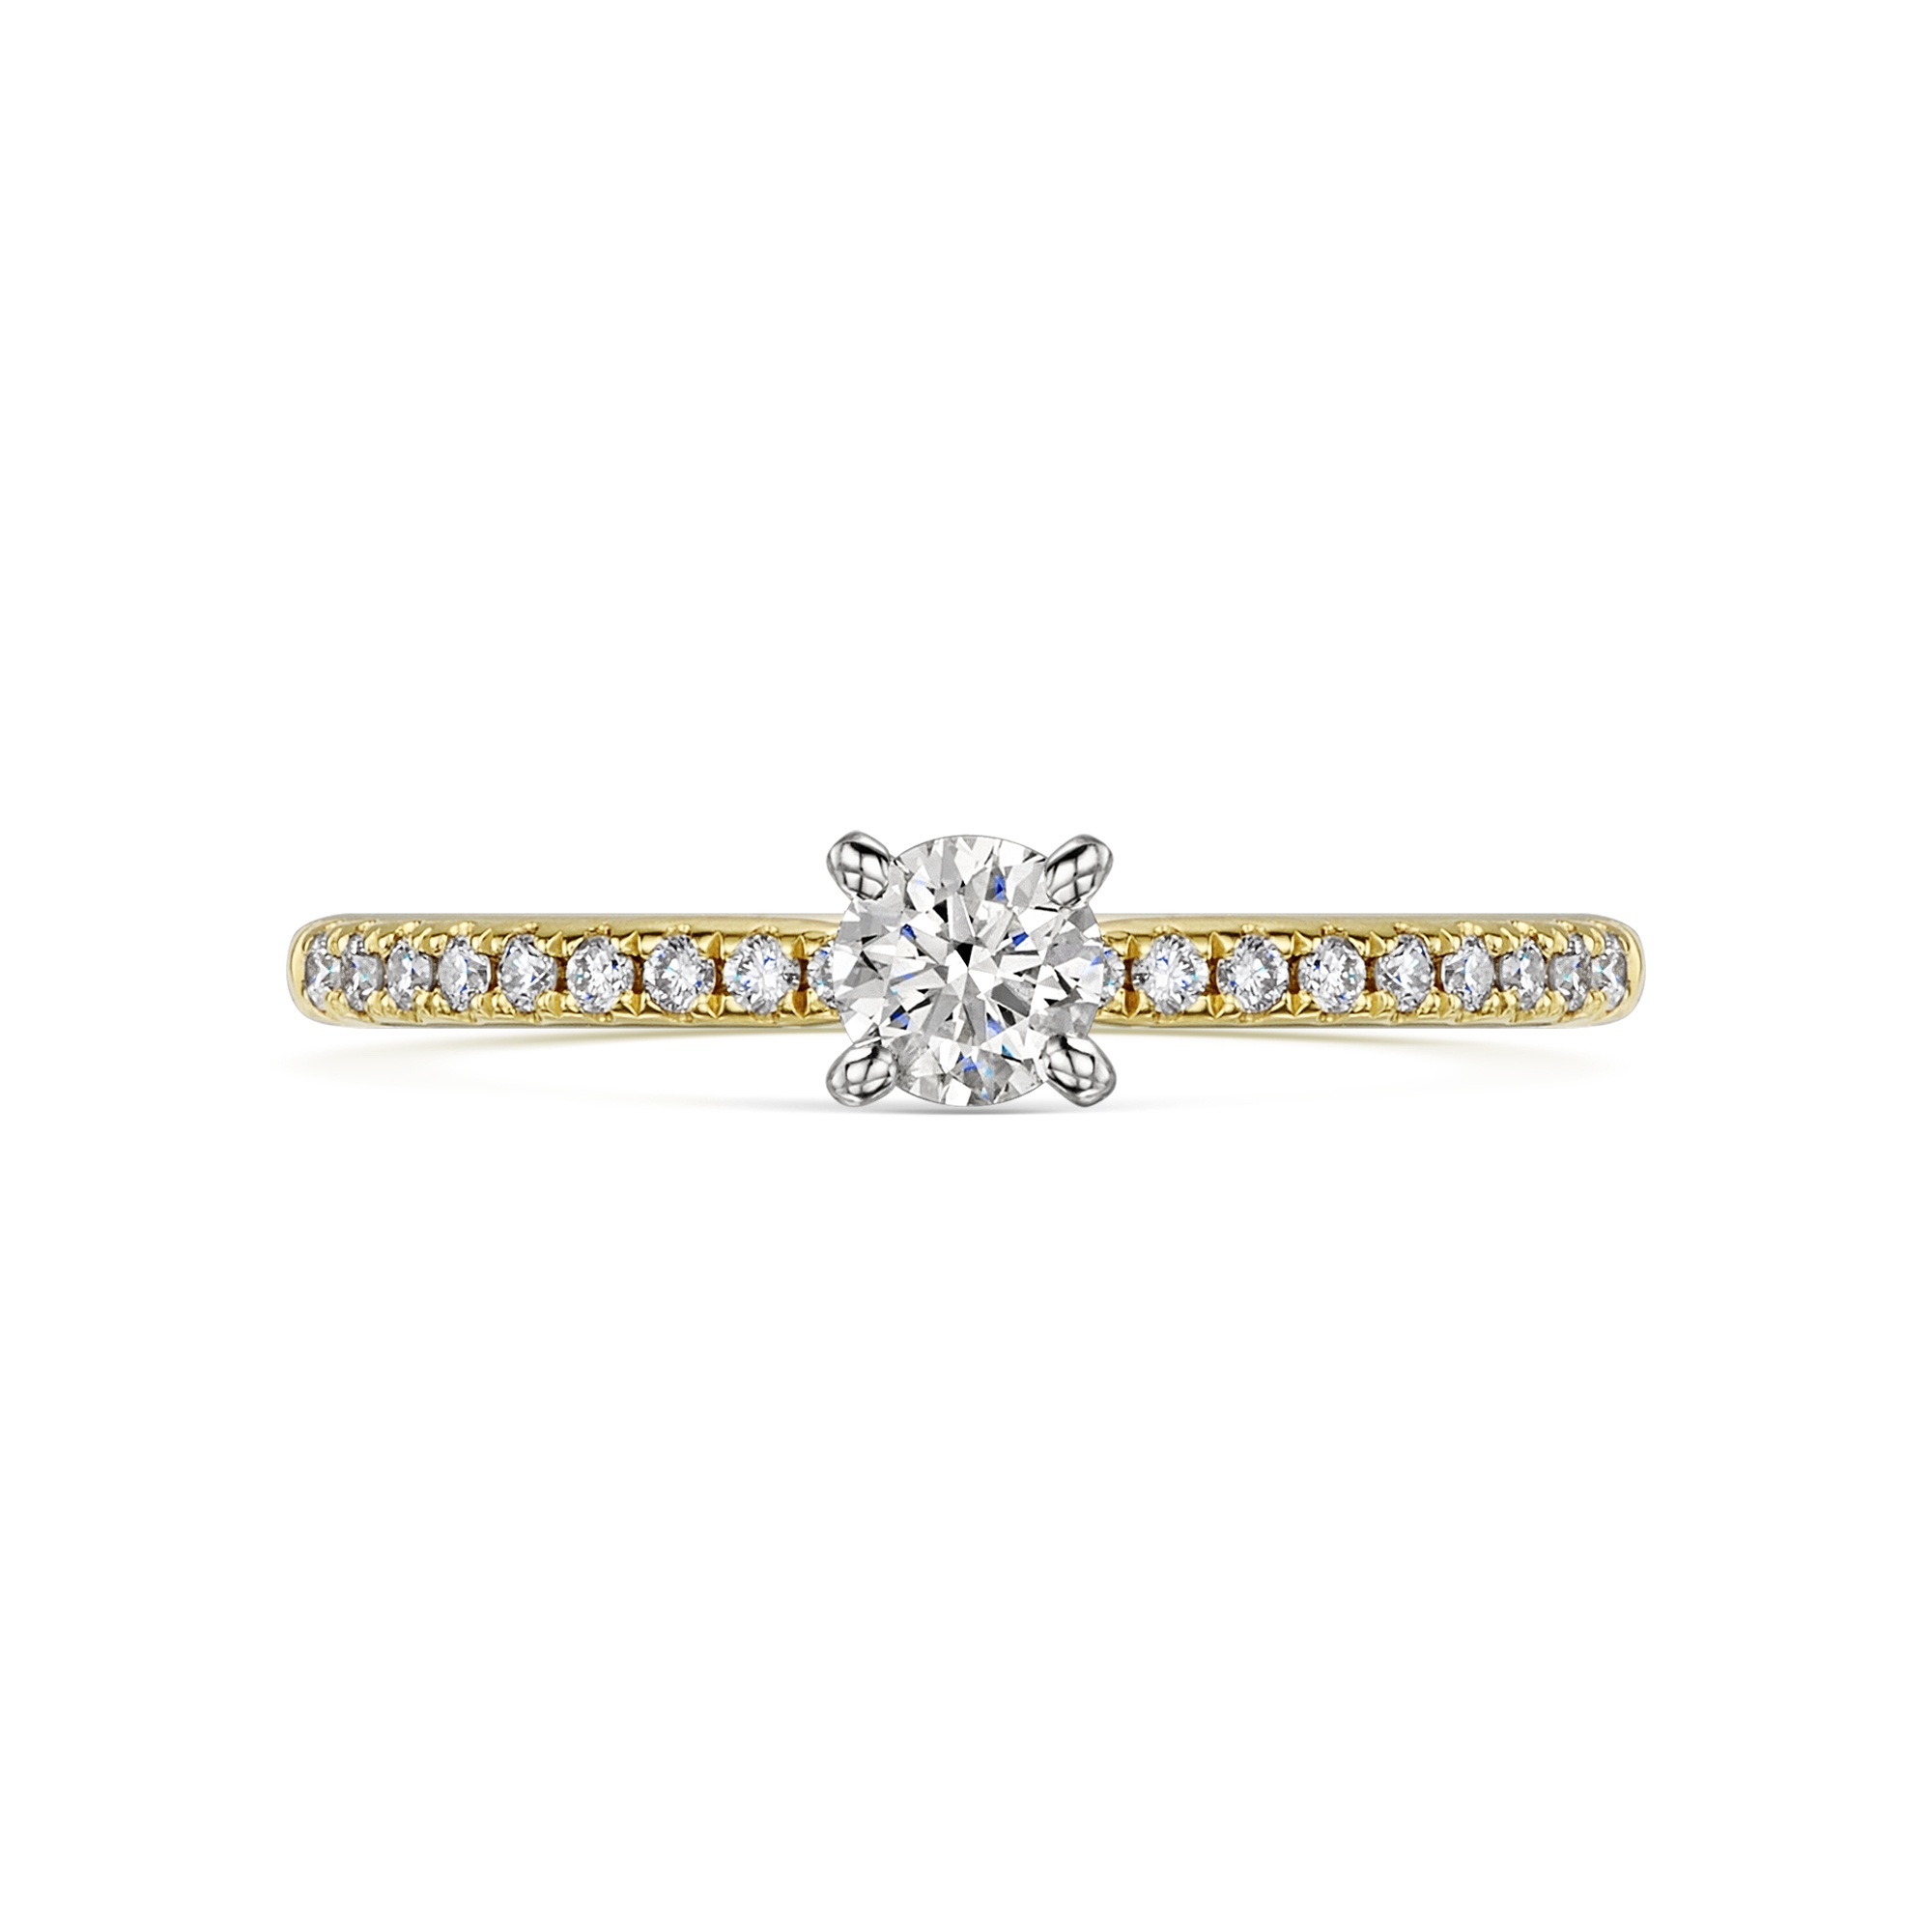 0.23ct Brilliant Cut 18ct Gold Ring With Diamond Set Shoulders